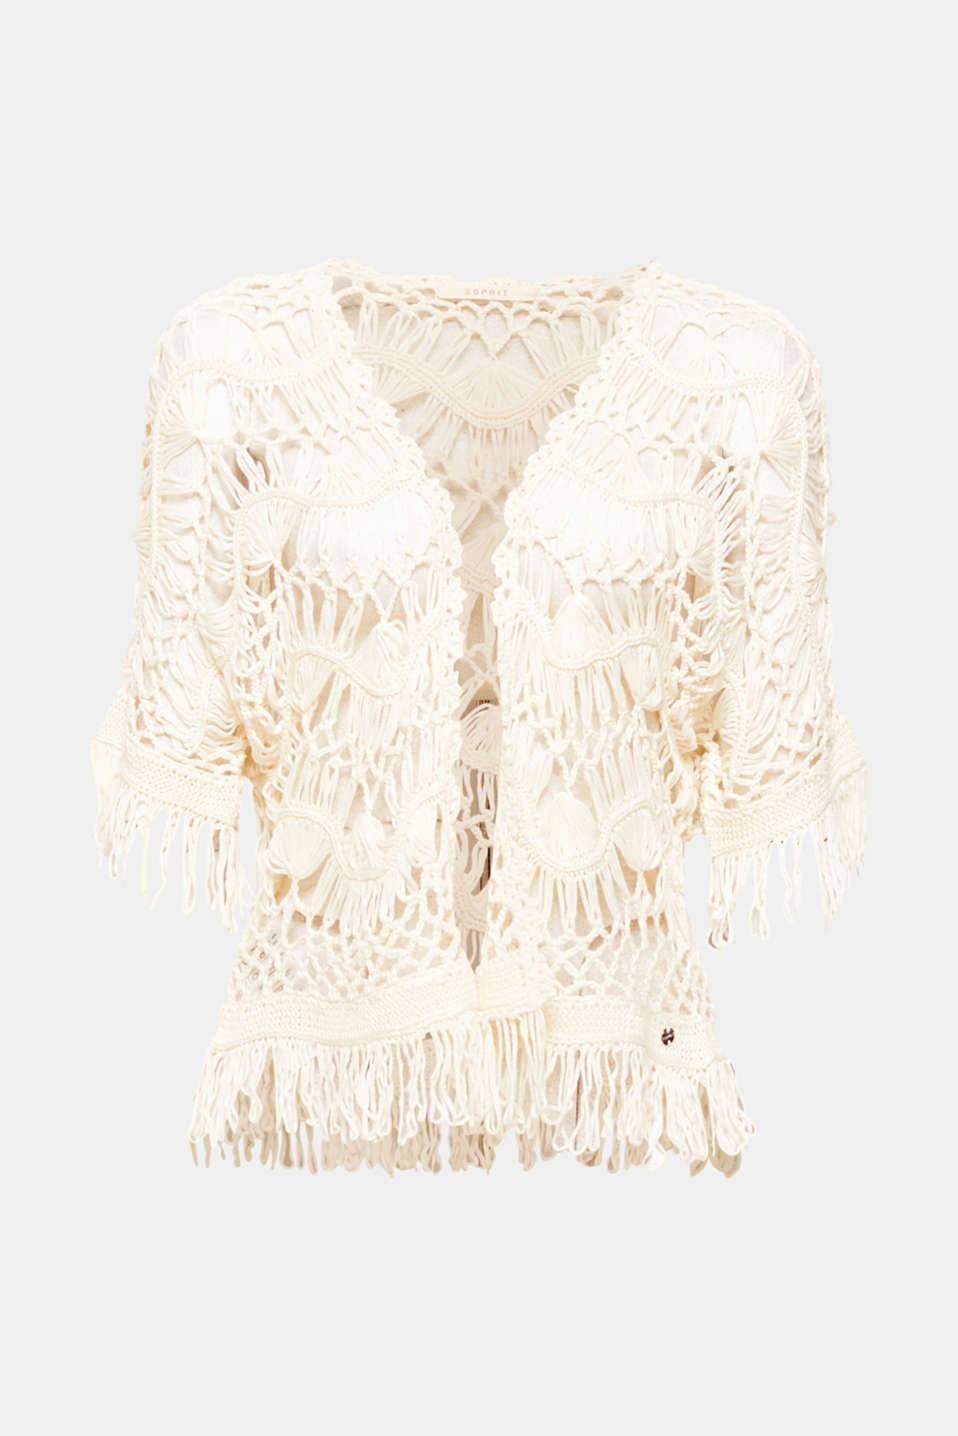 One of a kind! The exquisite, hand-stitched crochet pattern transforms this poncho into an airily light and totally unique fave